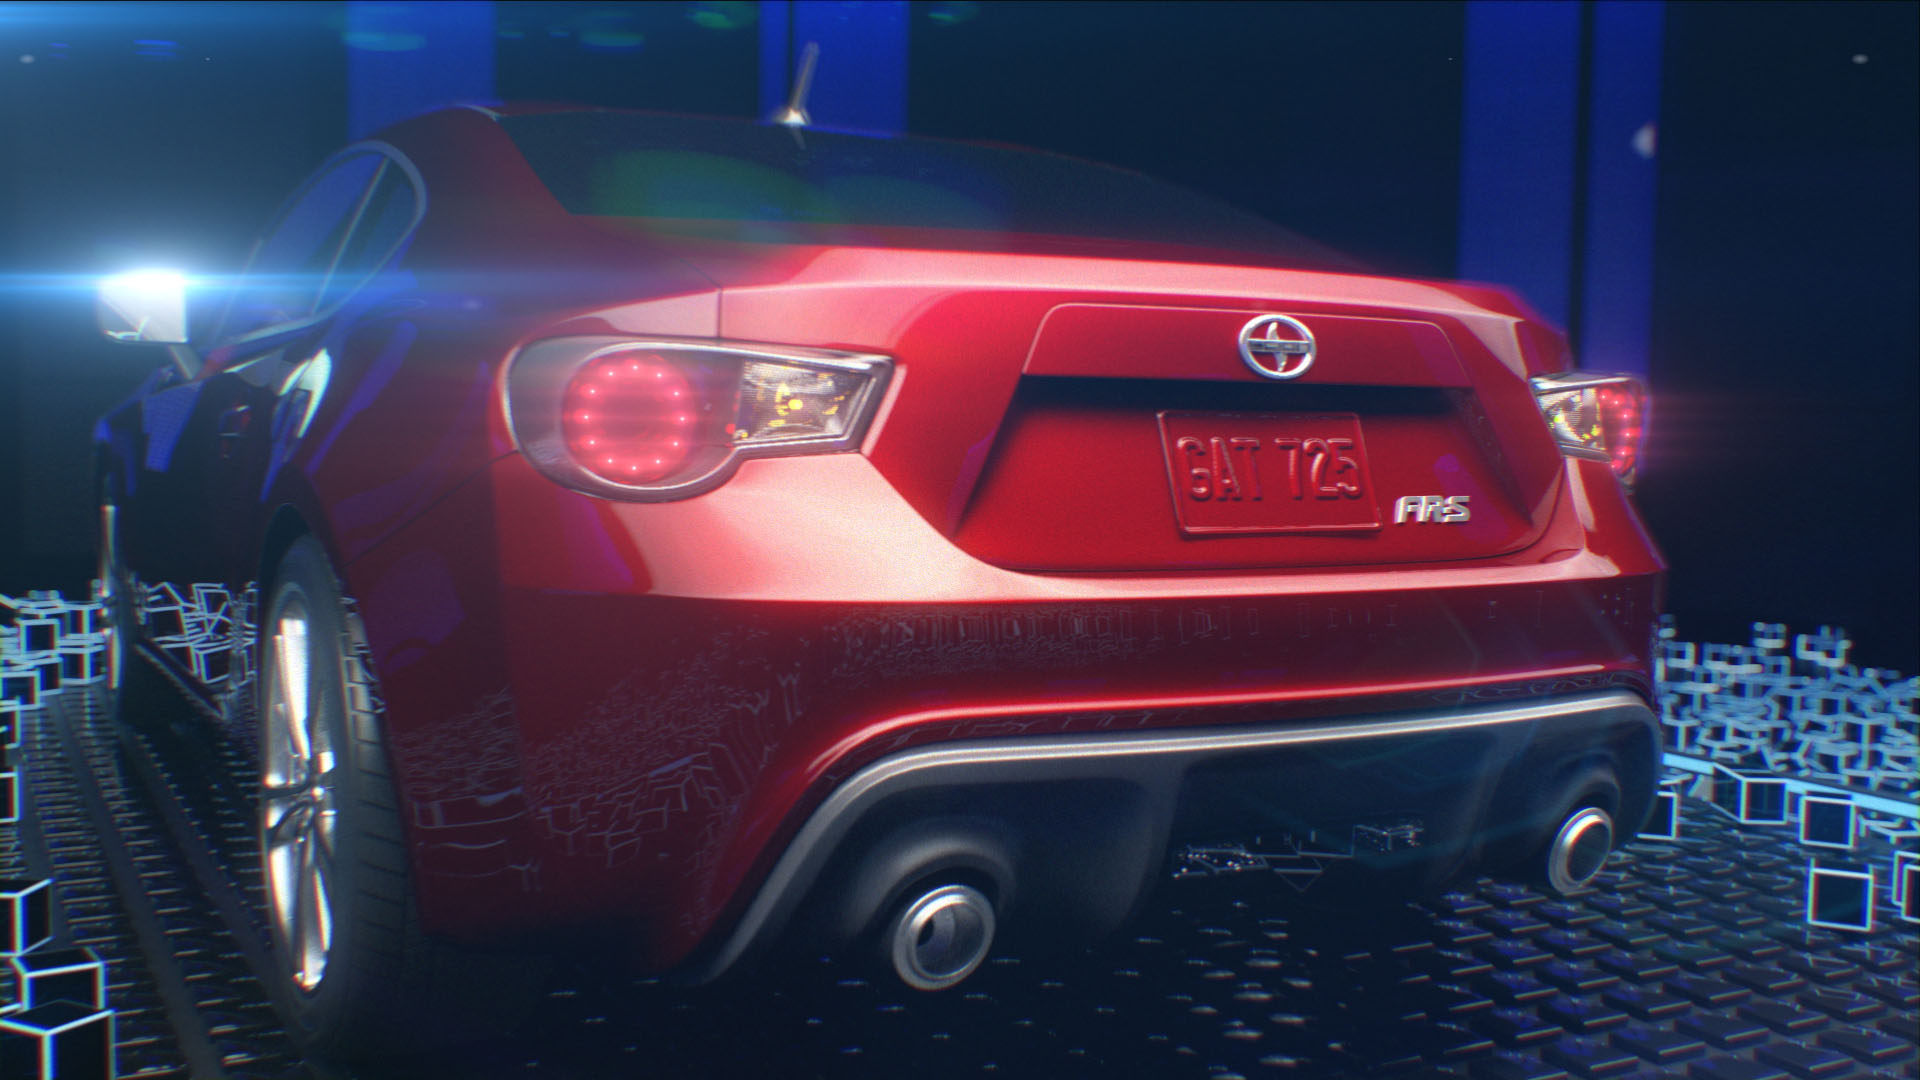 Marcus creates new spot for Scion FRS